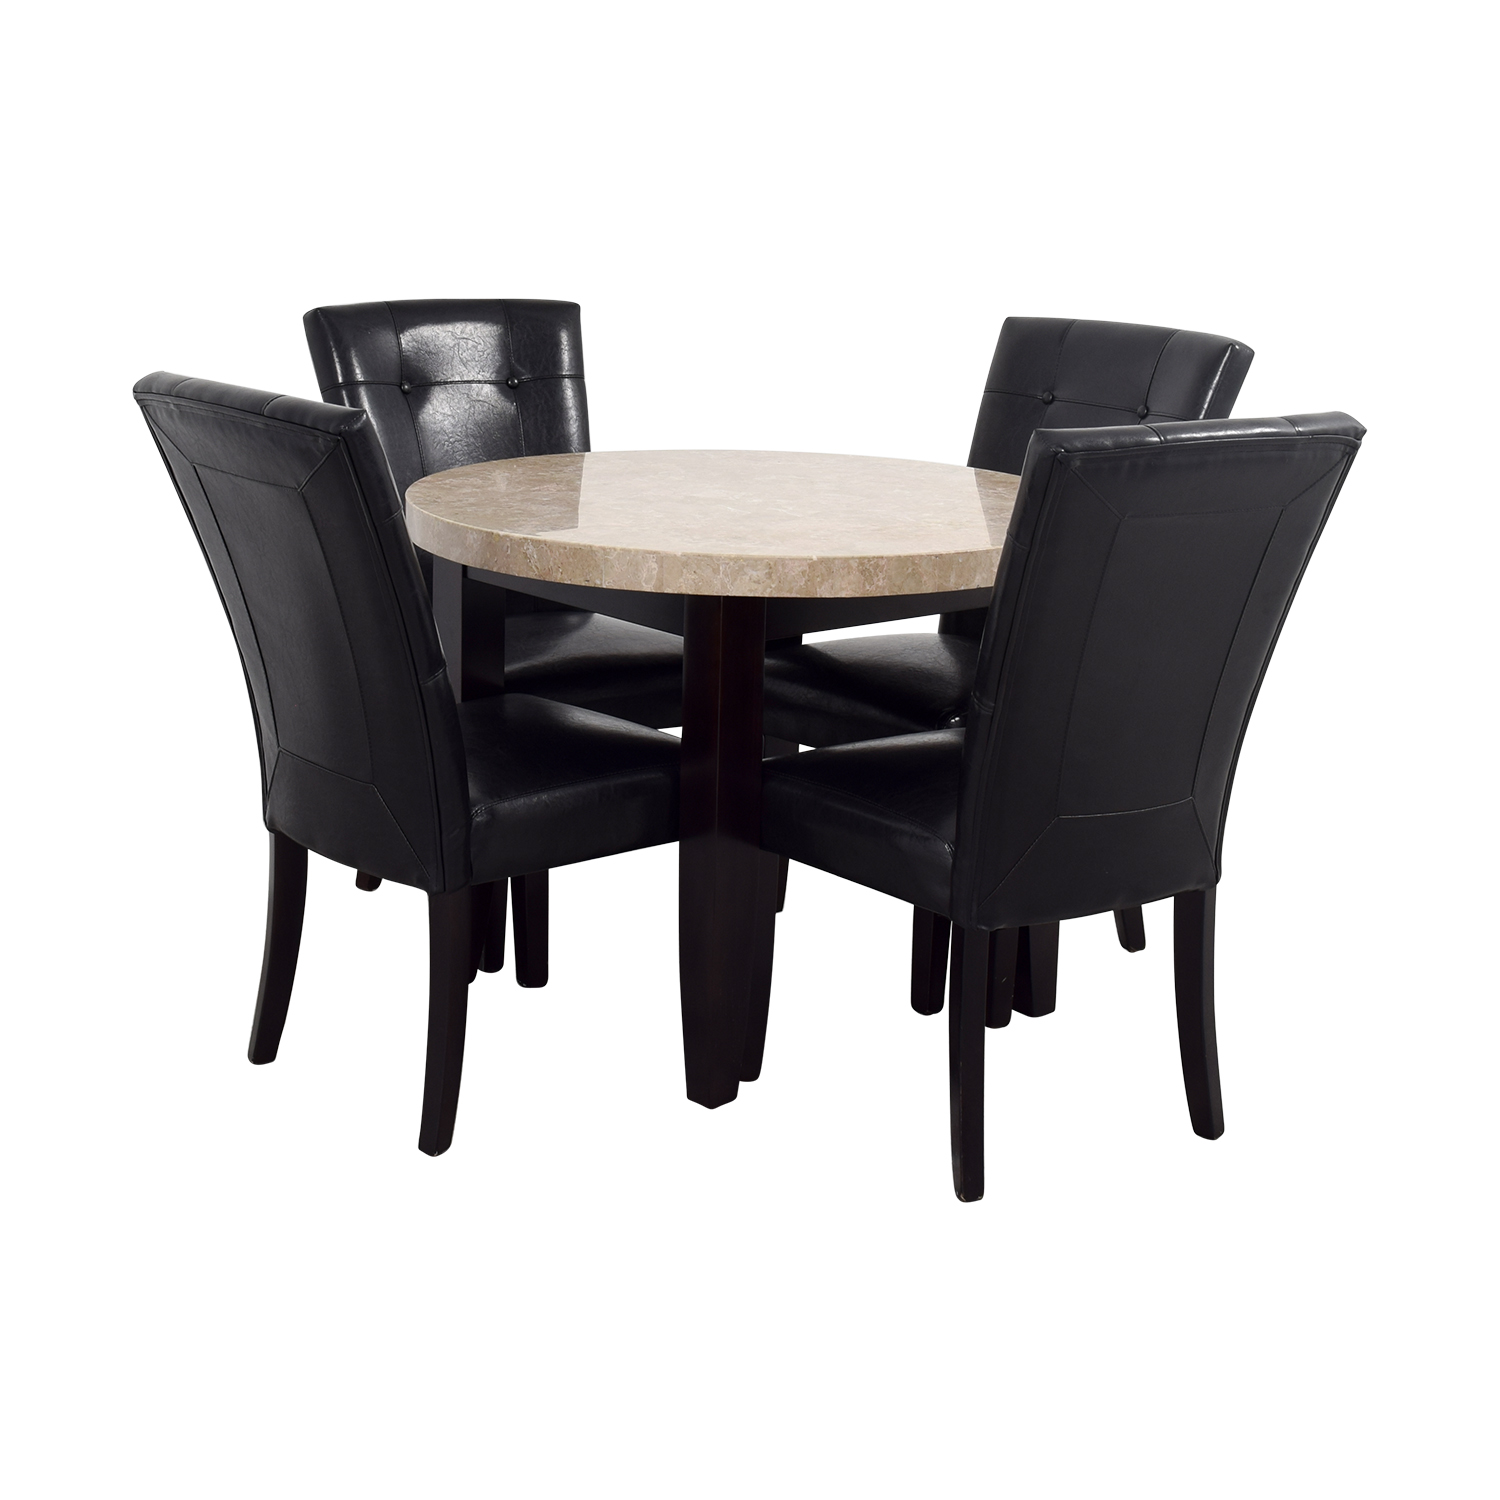 Bobs Furniture Black And Tan Marble Dining Set Used